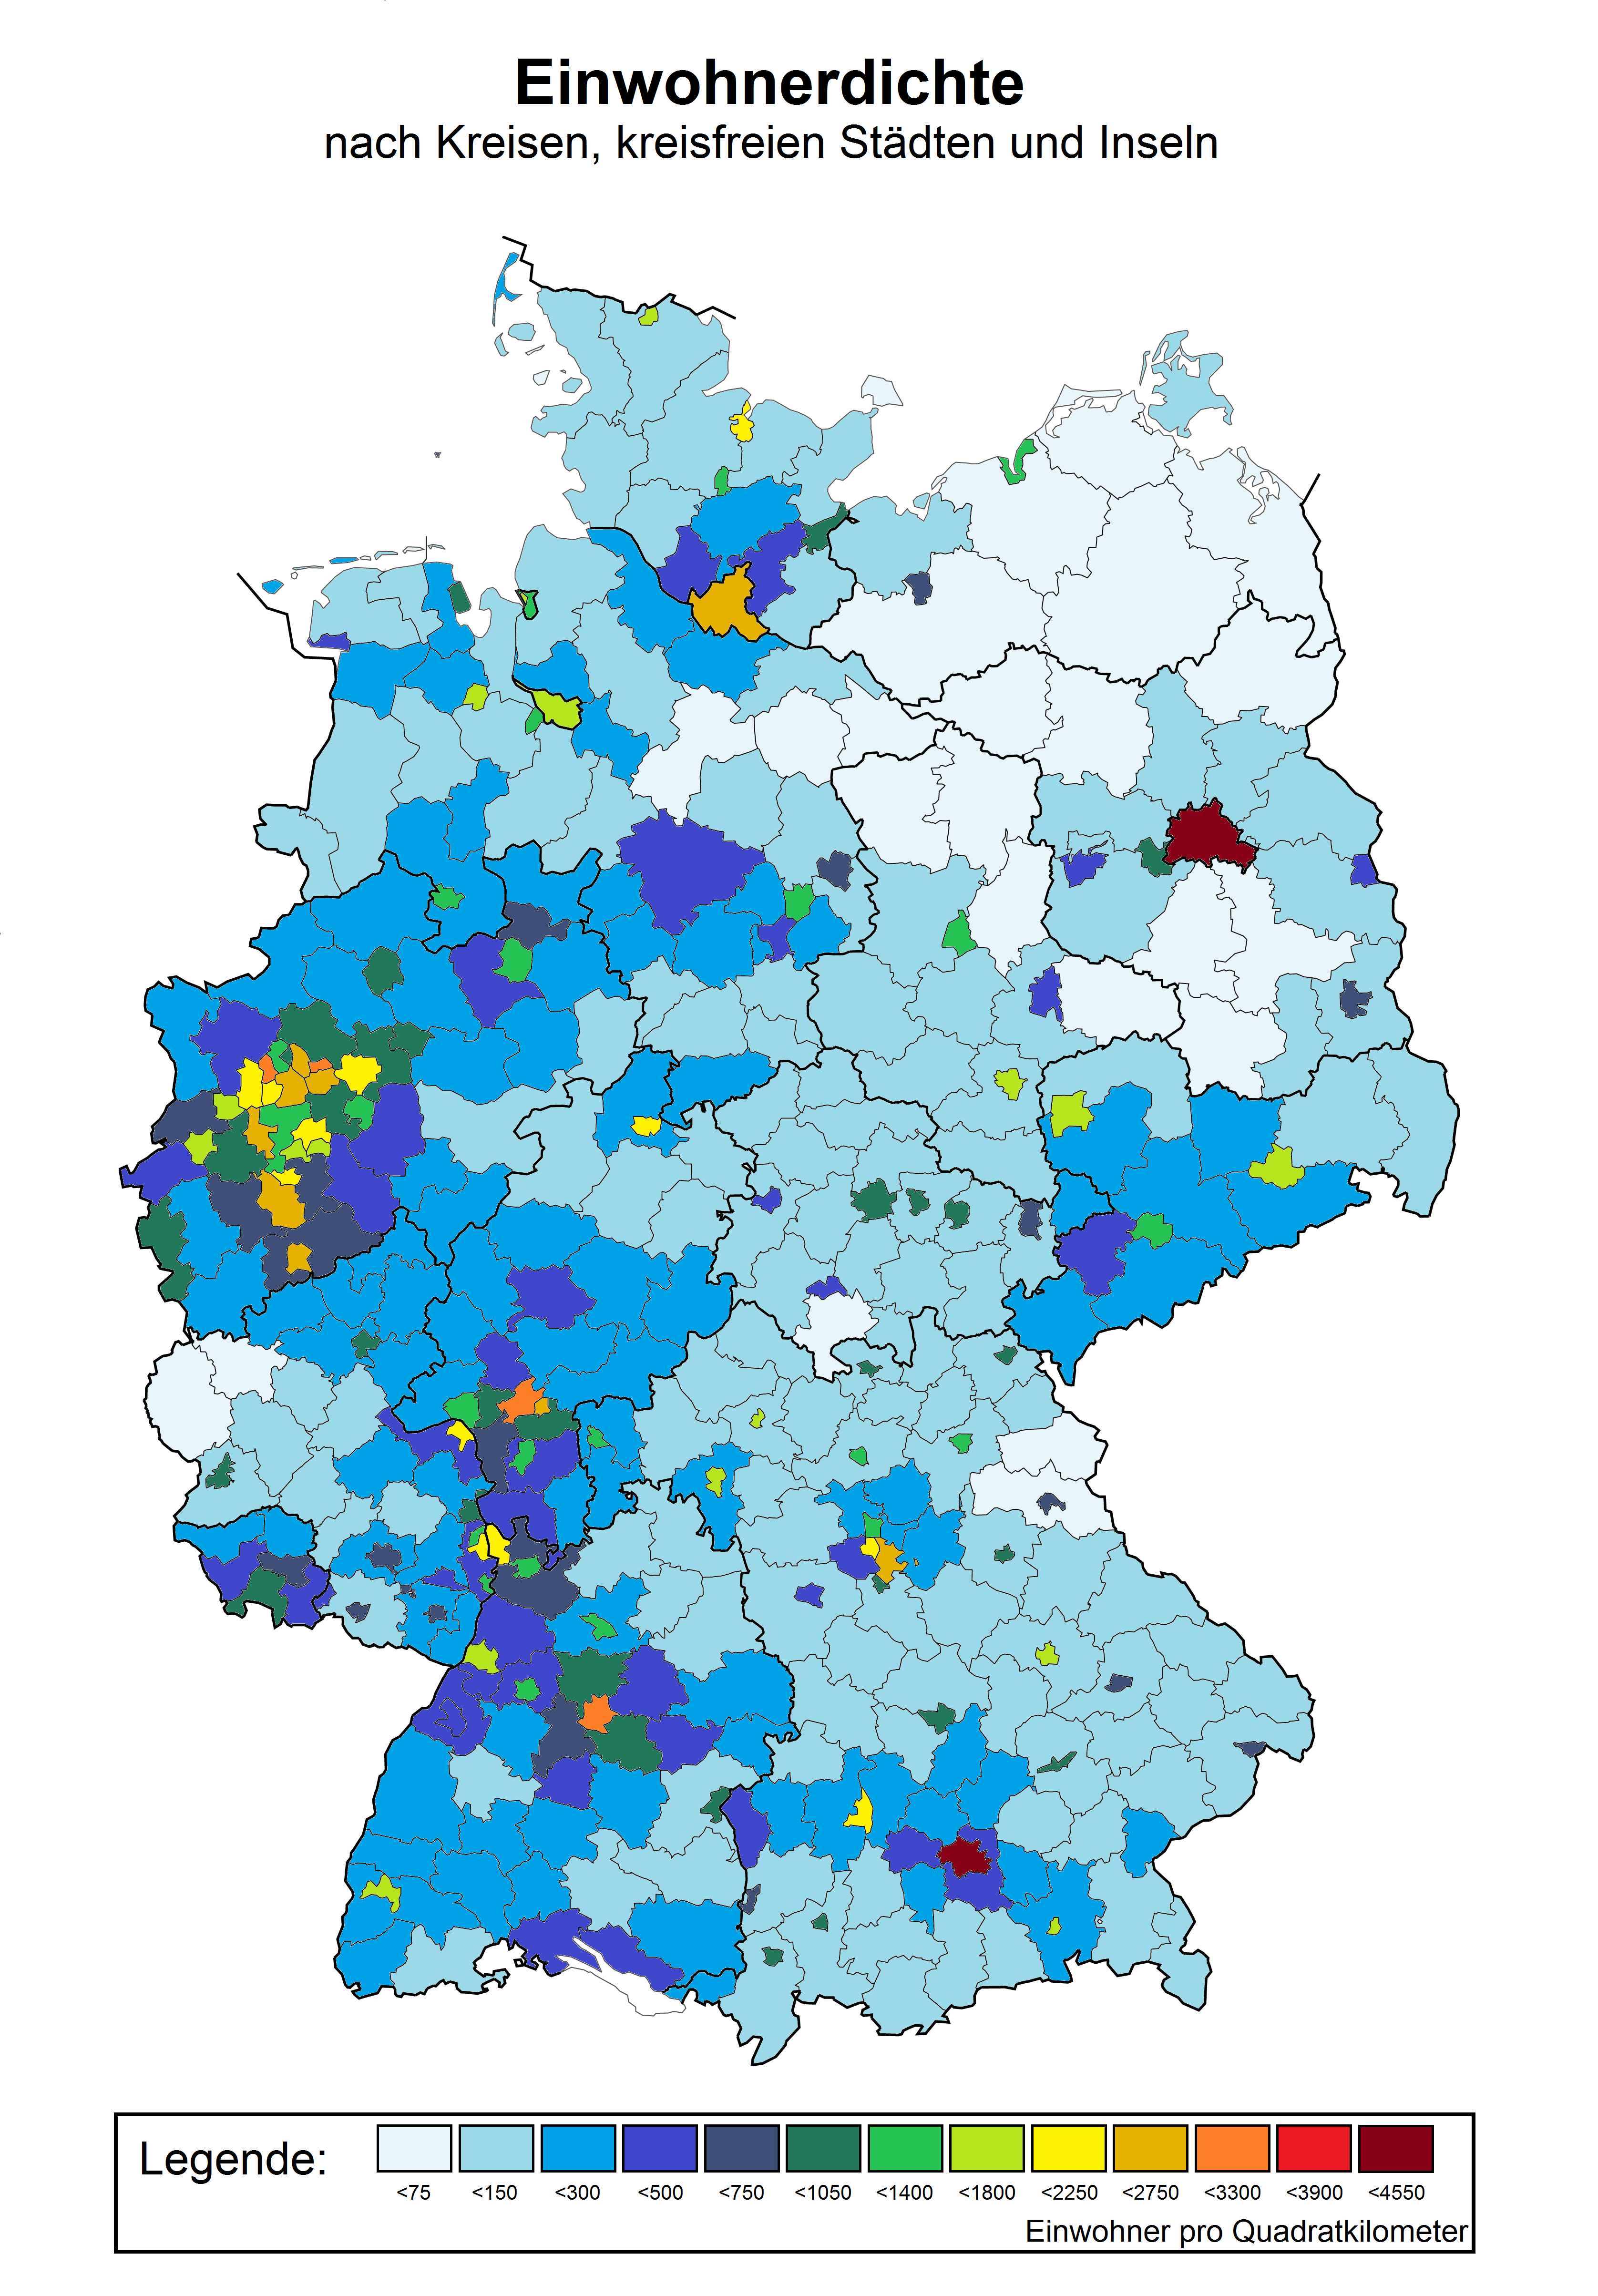 Map showing the population density of Germany